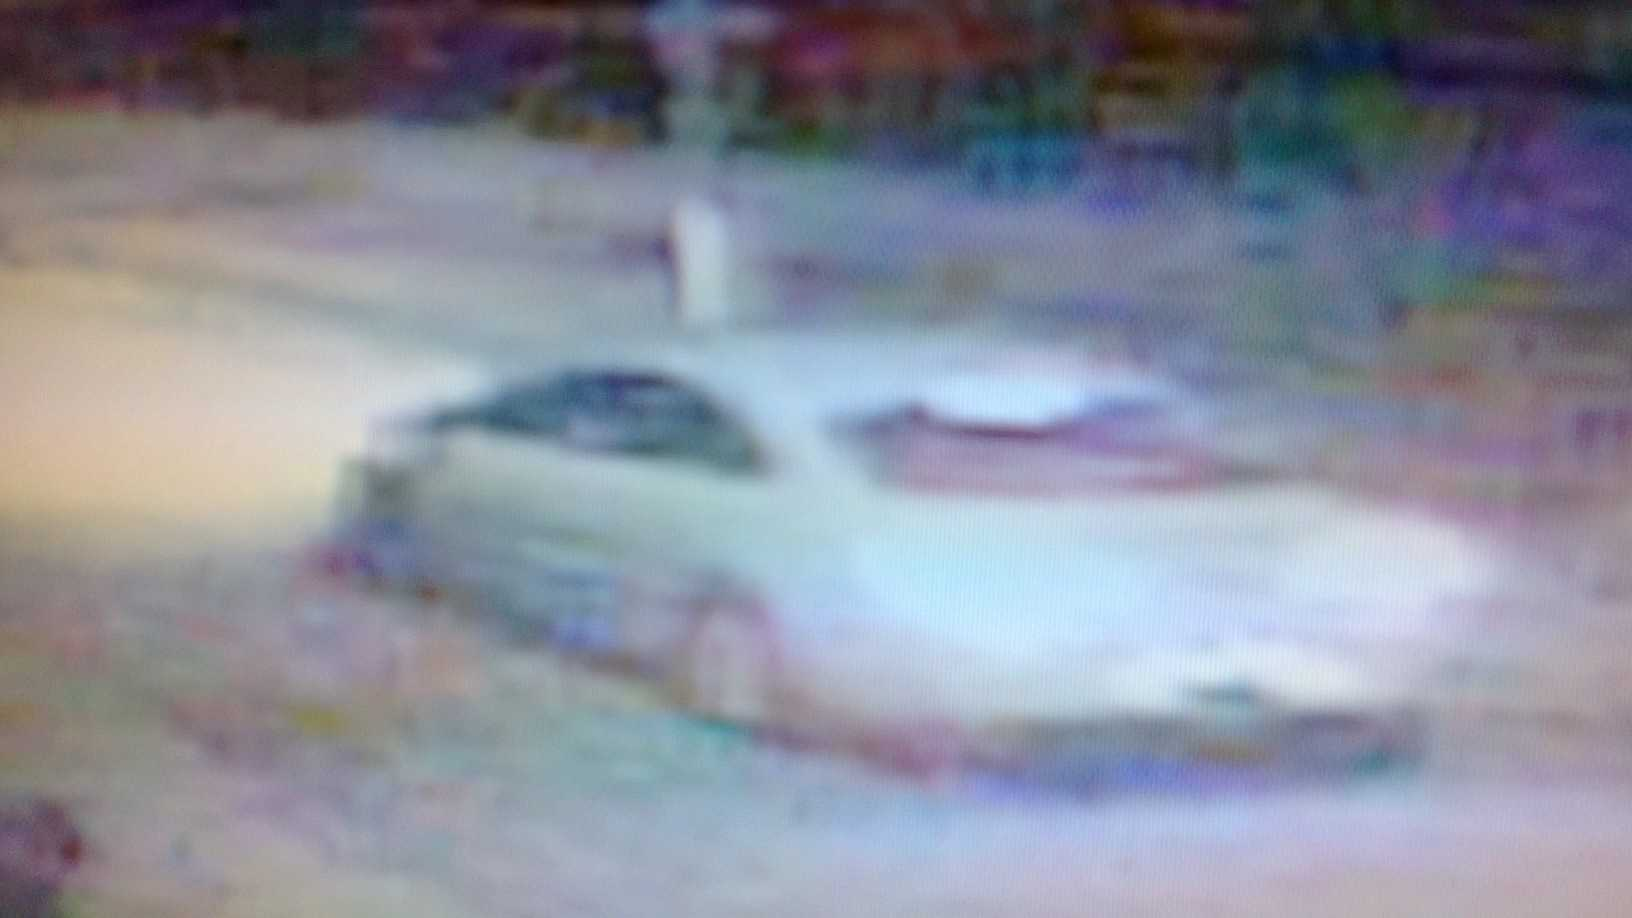 Police believe this surveillance image shows the 2013 white Volkswagen CC Sport used in the Labor Day murder of 11-year-old Arabian Gayles.